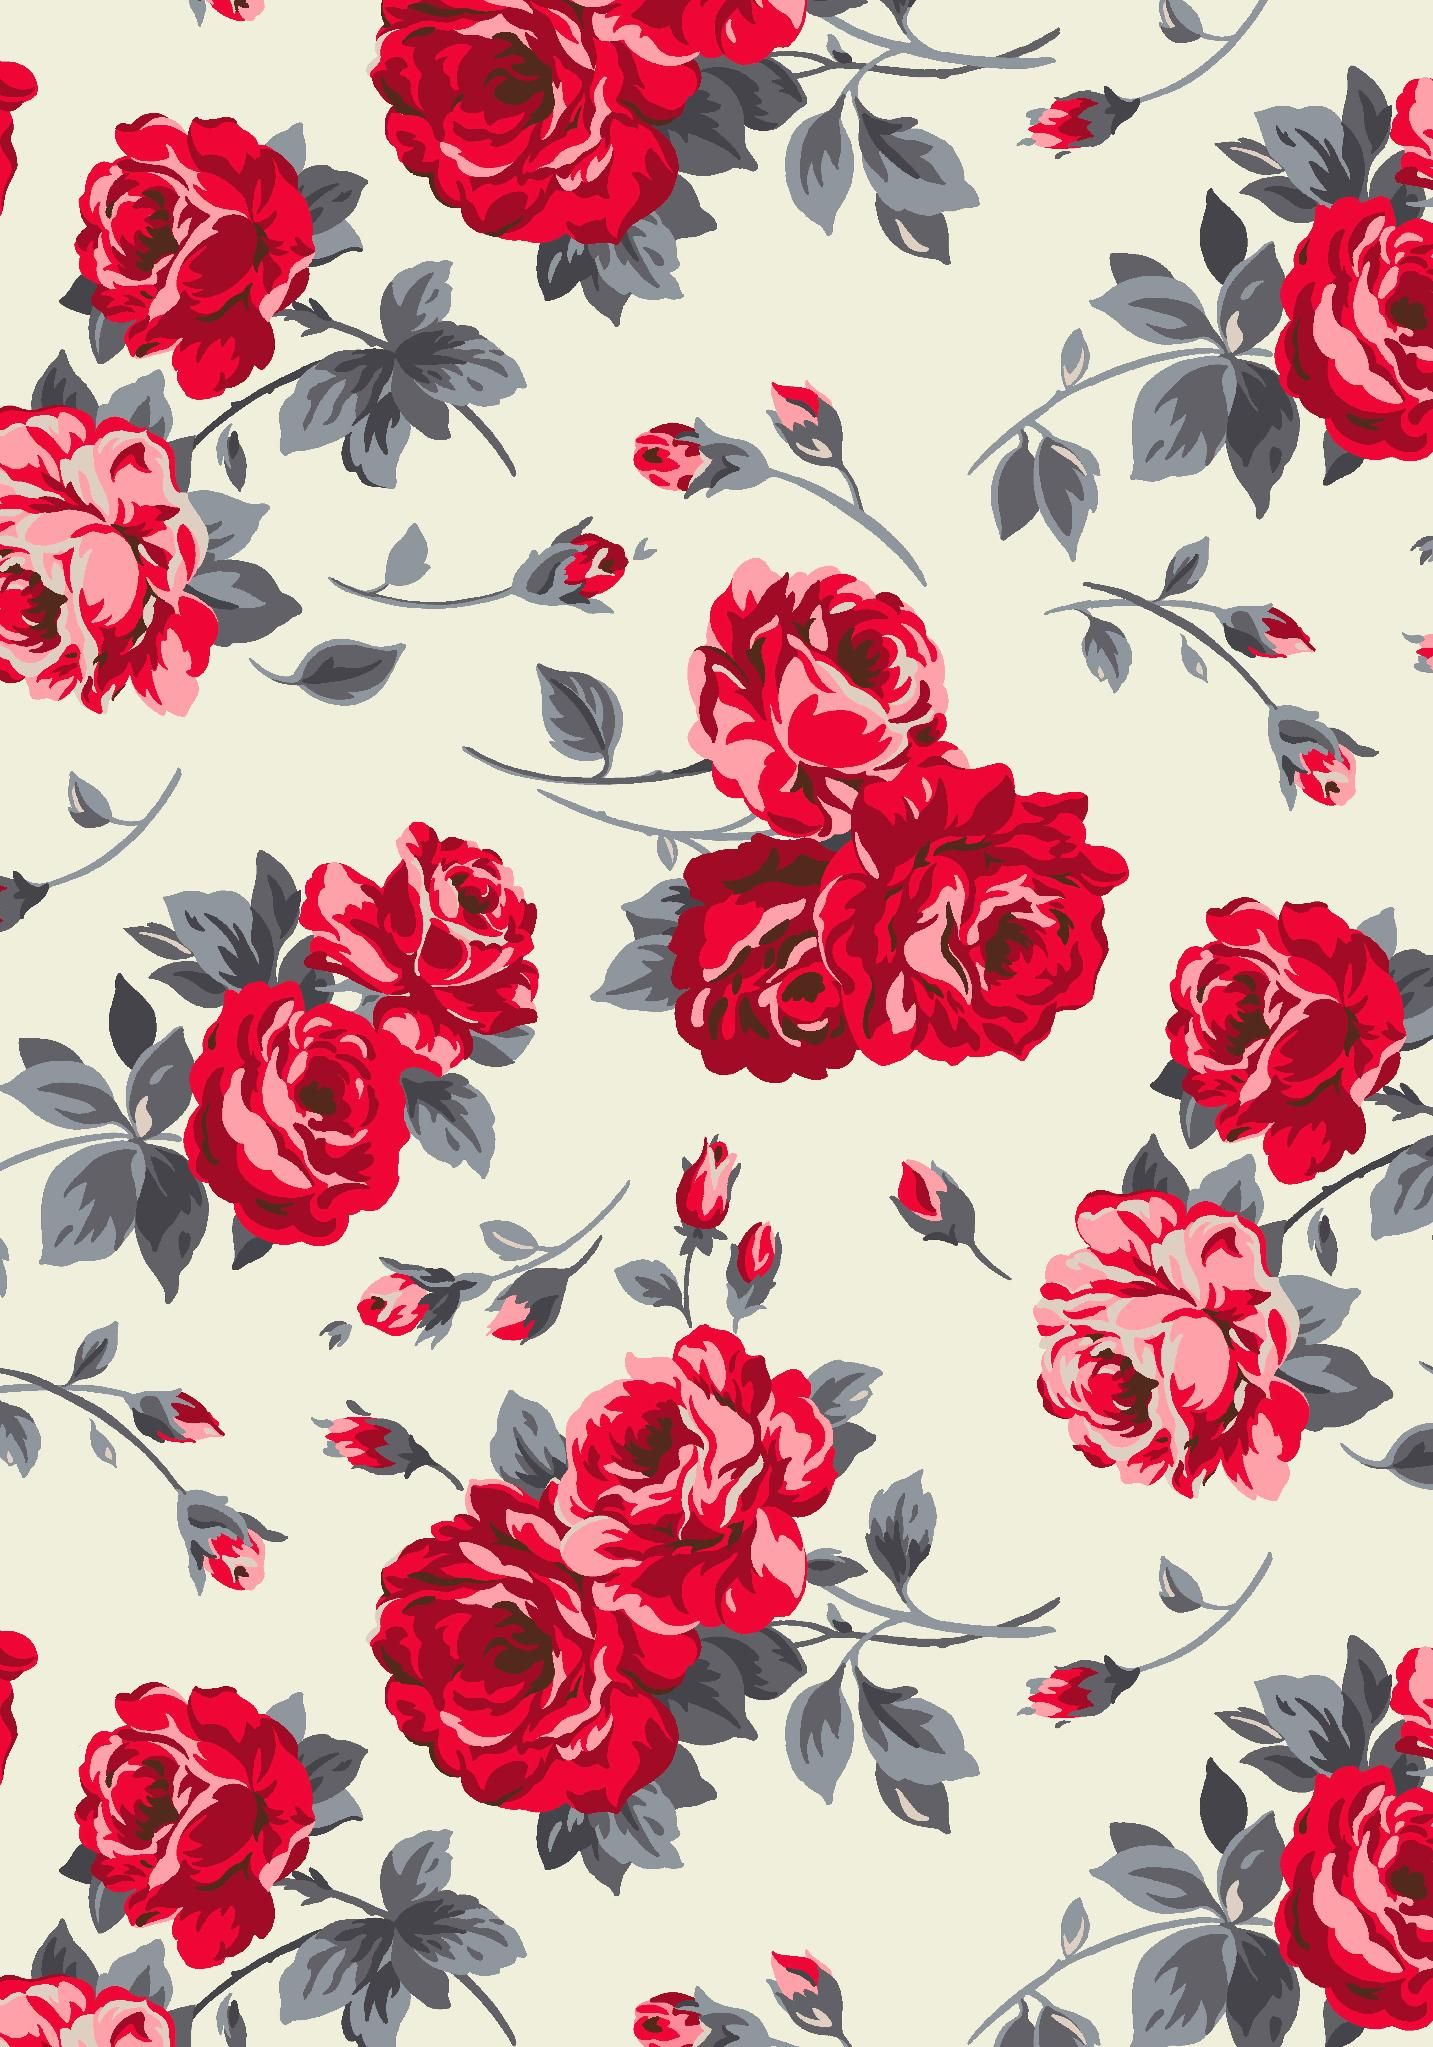 Festive Florals Backgrounds Rose Wallpaper Pattern